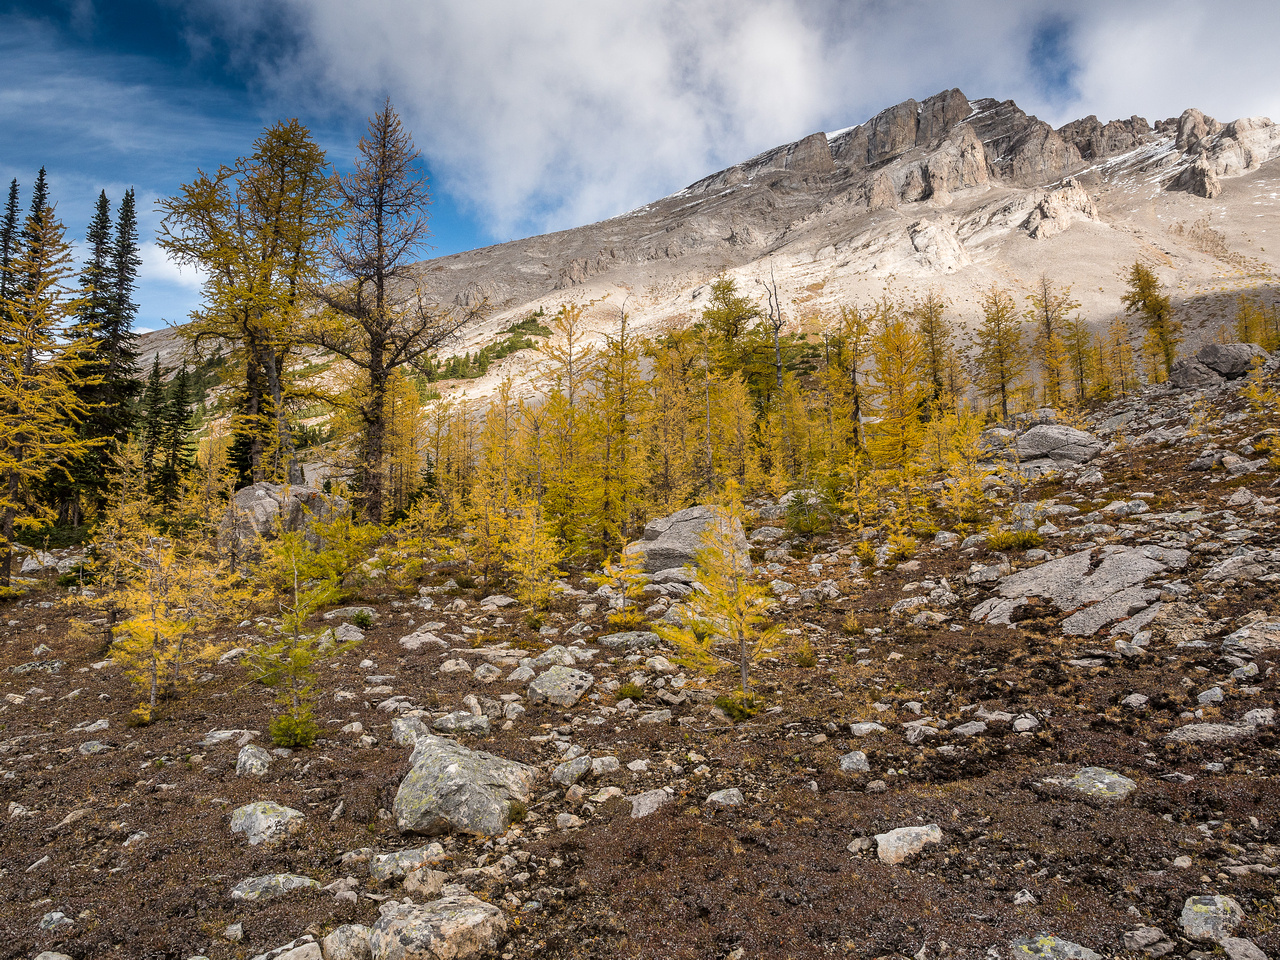 Passing through a nice larch forest on the way to Eagle Mountain.